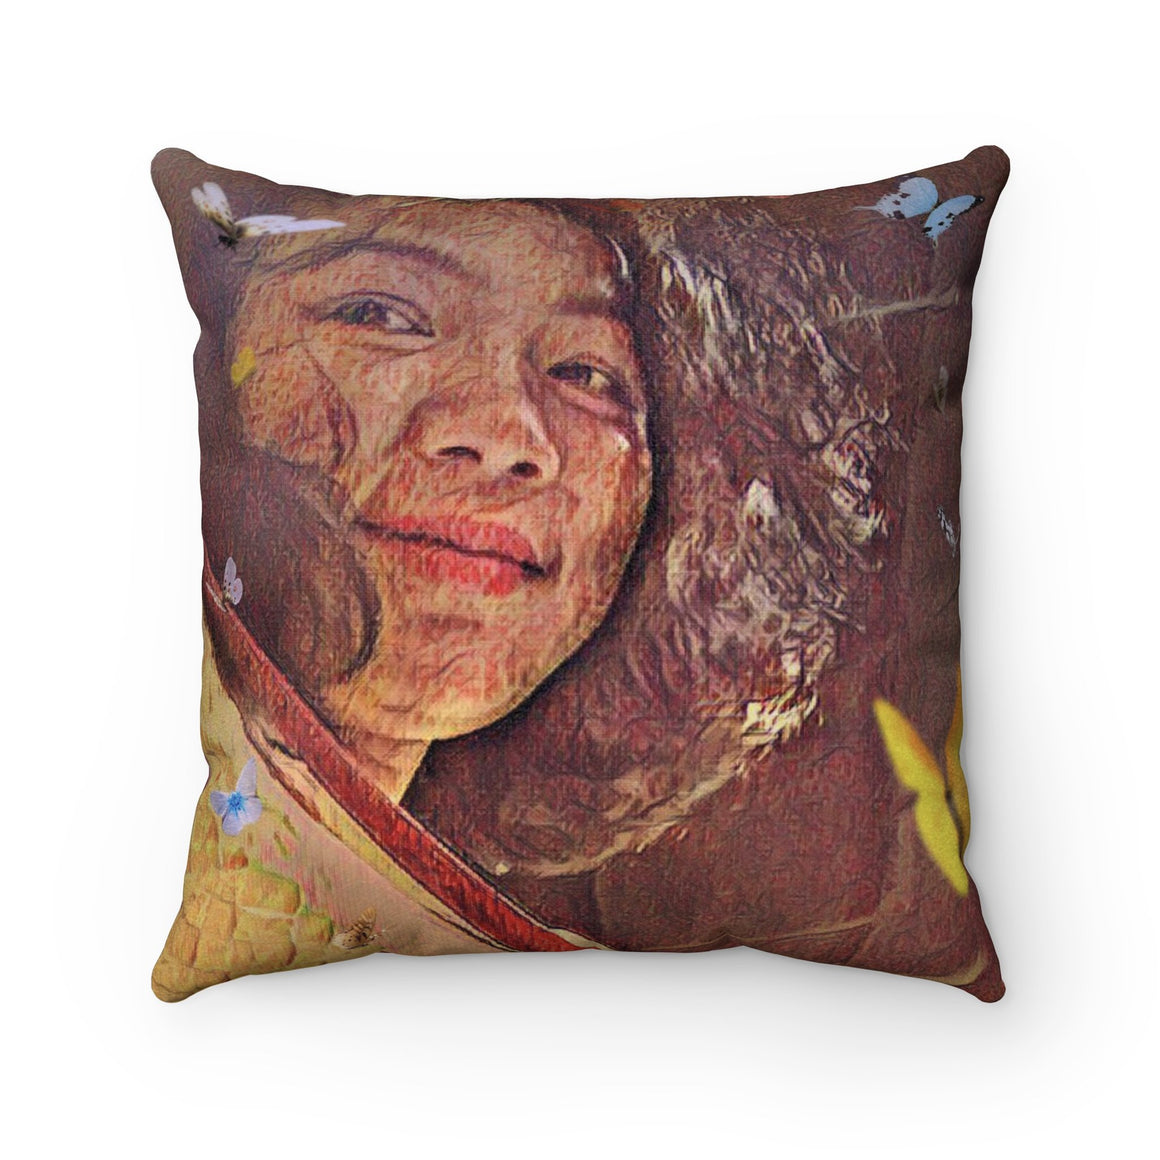 Levi Thang Vintage Face Design J Faux Suede Square Pillow Case